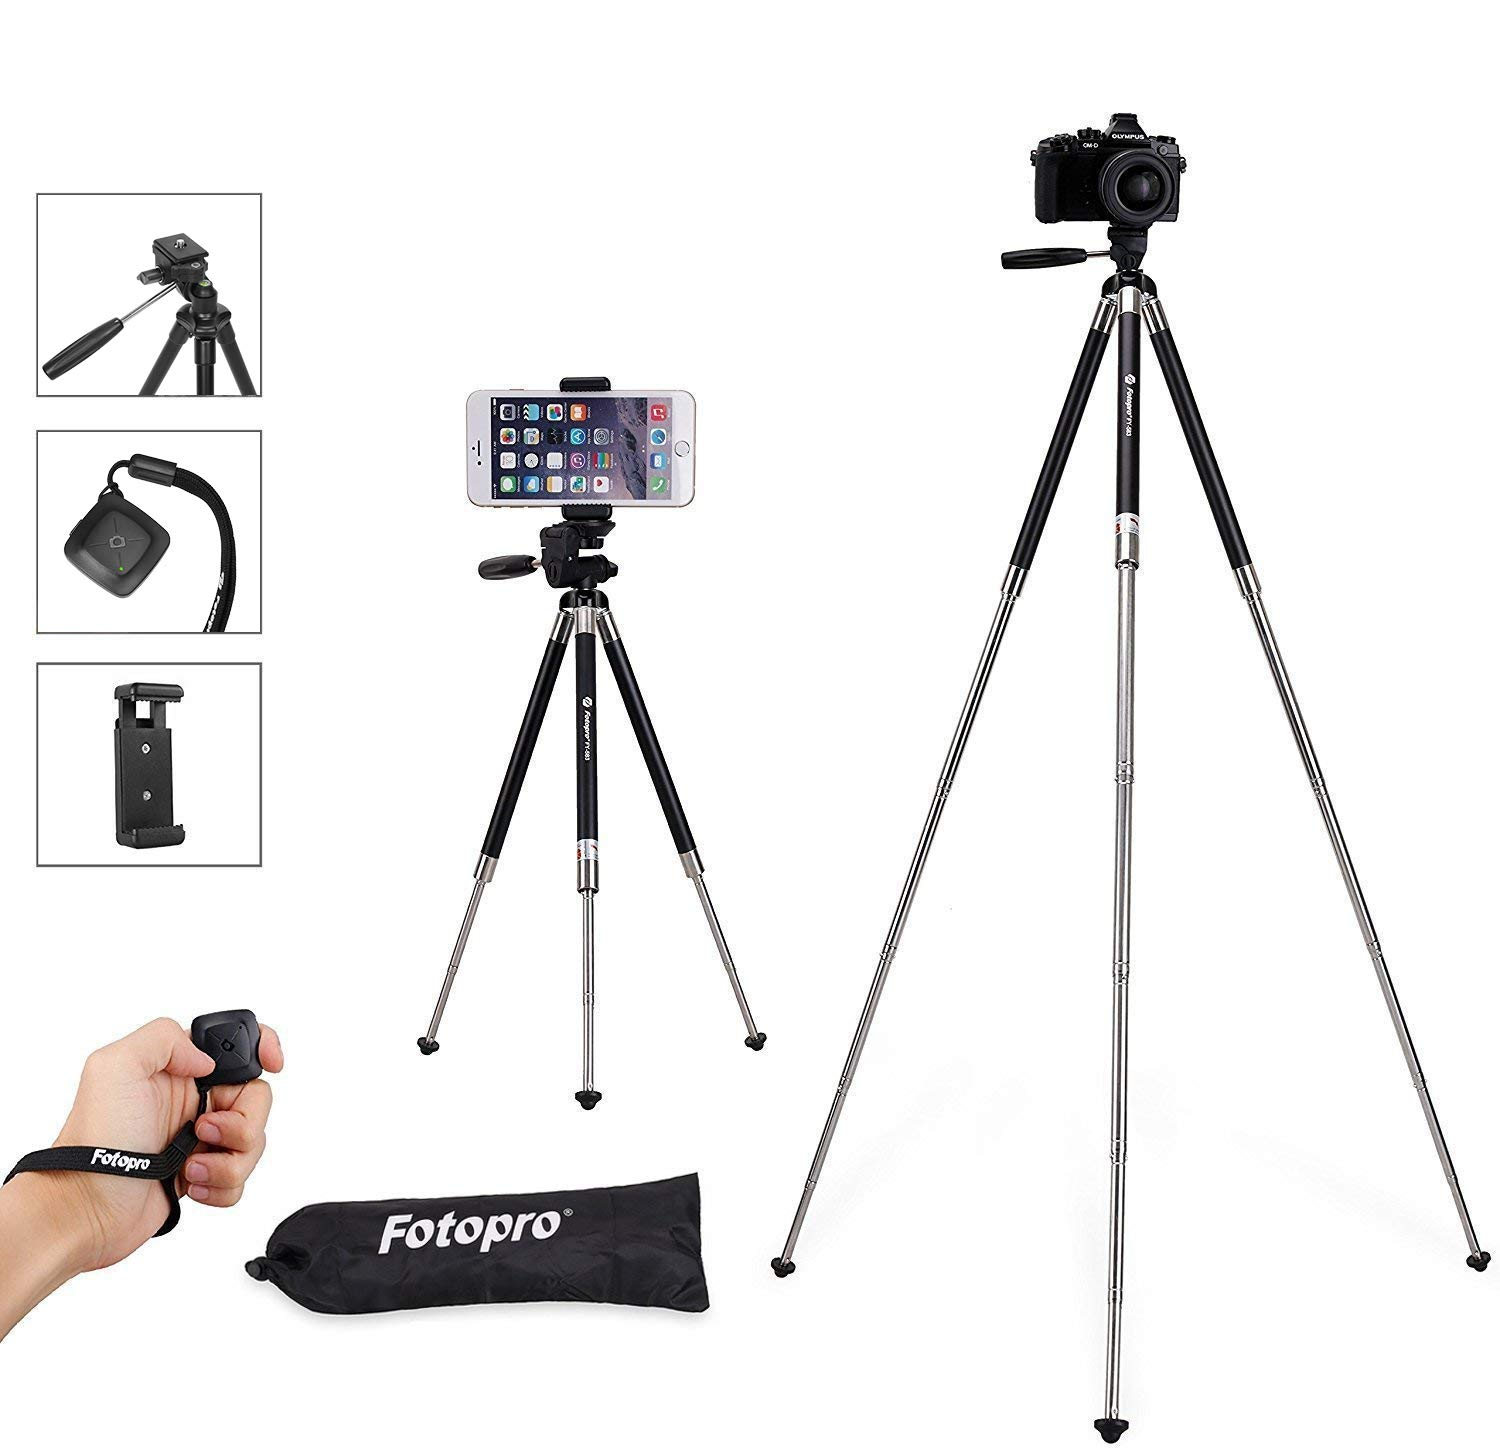 Fotopro Phone Tripod, 39.5 Inch Aluminum Camera Tripod with Bluetooth Remote Control and Bag for iPhone 8/Plus,Samsung, Huawei,Gopro 6/5/4,Nikon,Canon